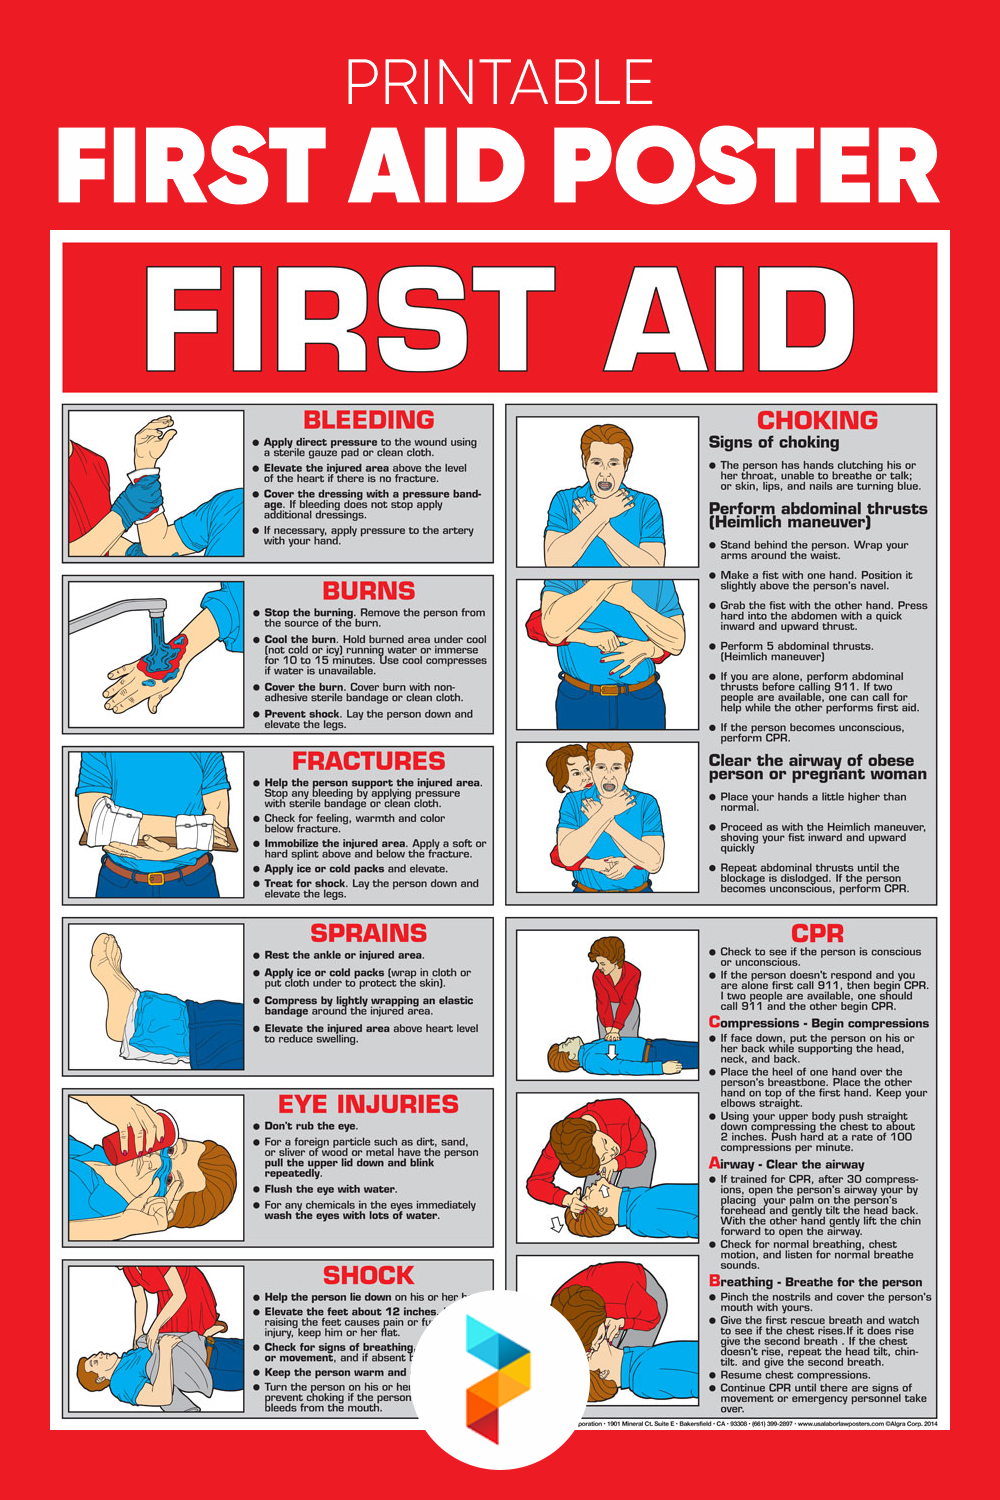 Printable First Aid Poster